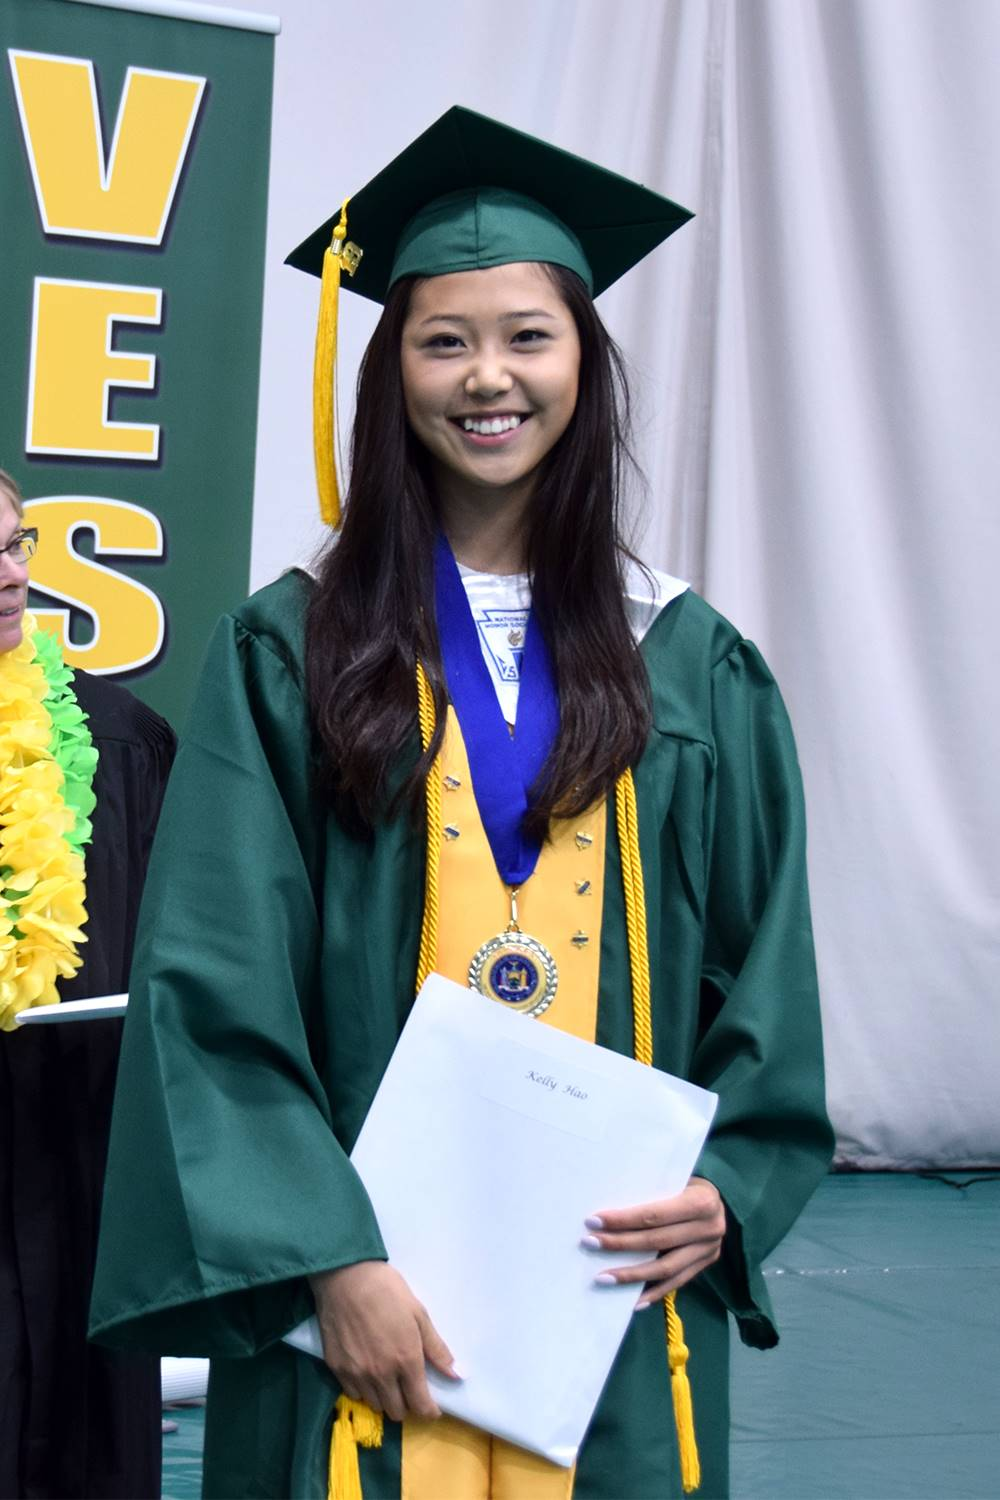 A graduate stands with her diploma after receiving it.